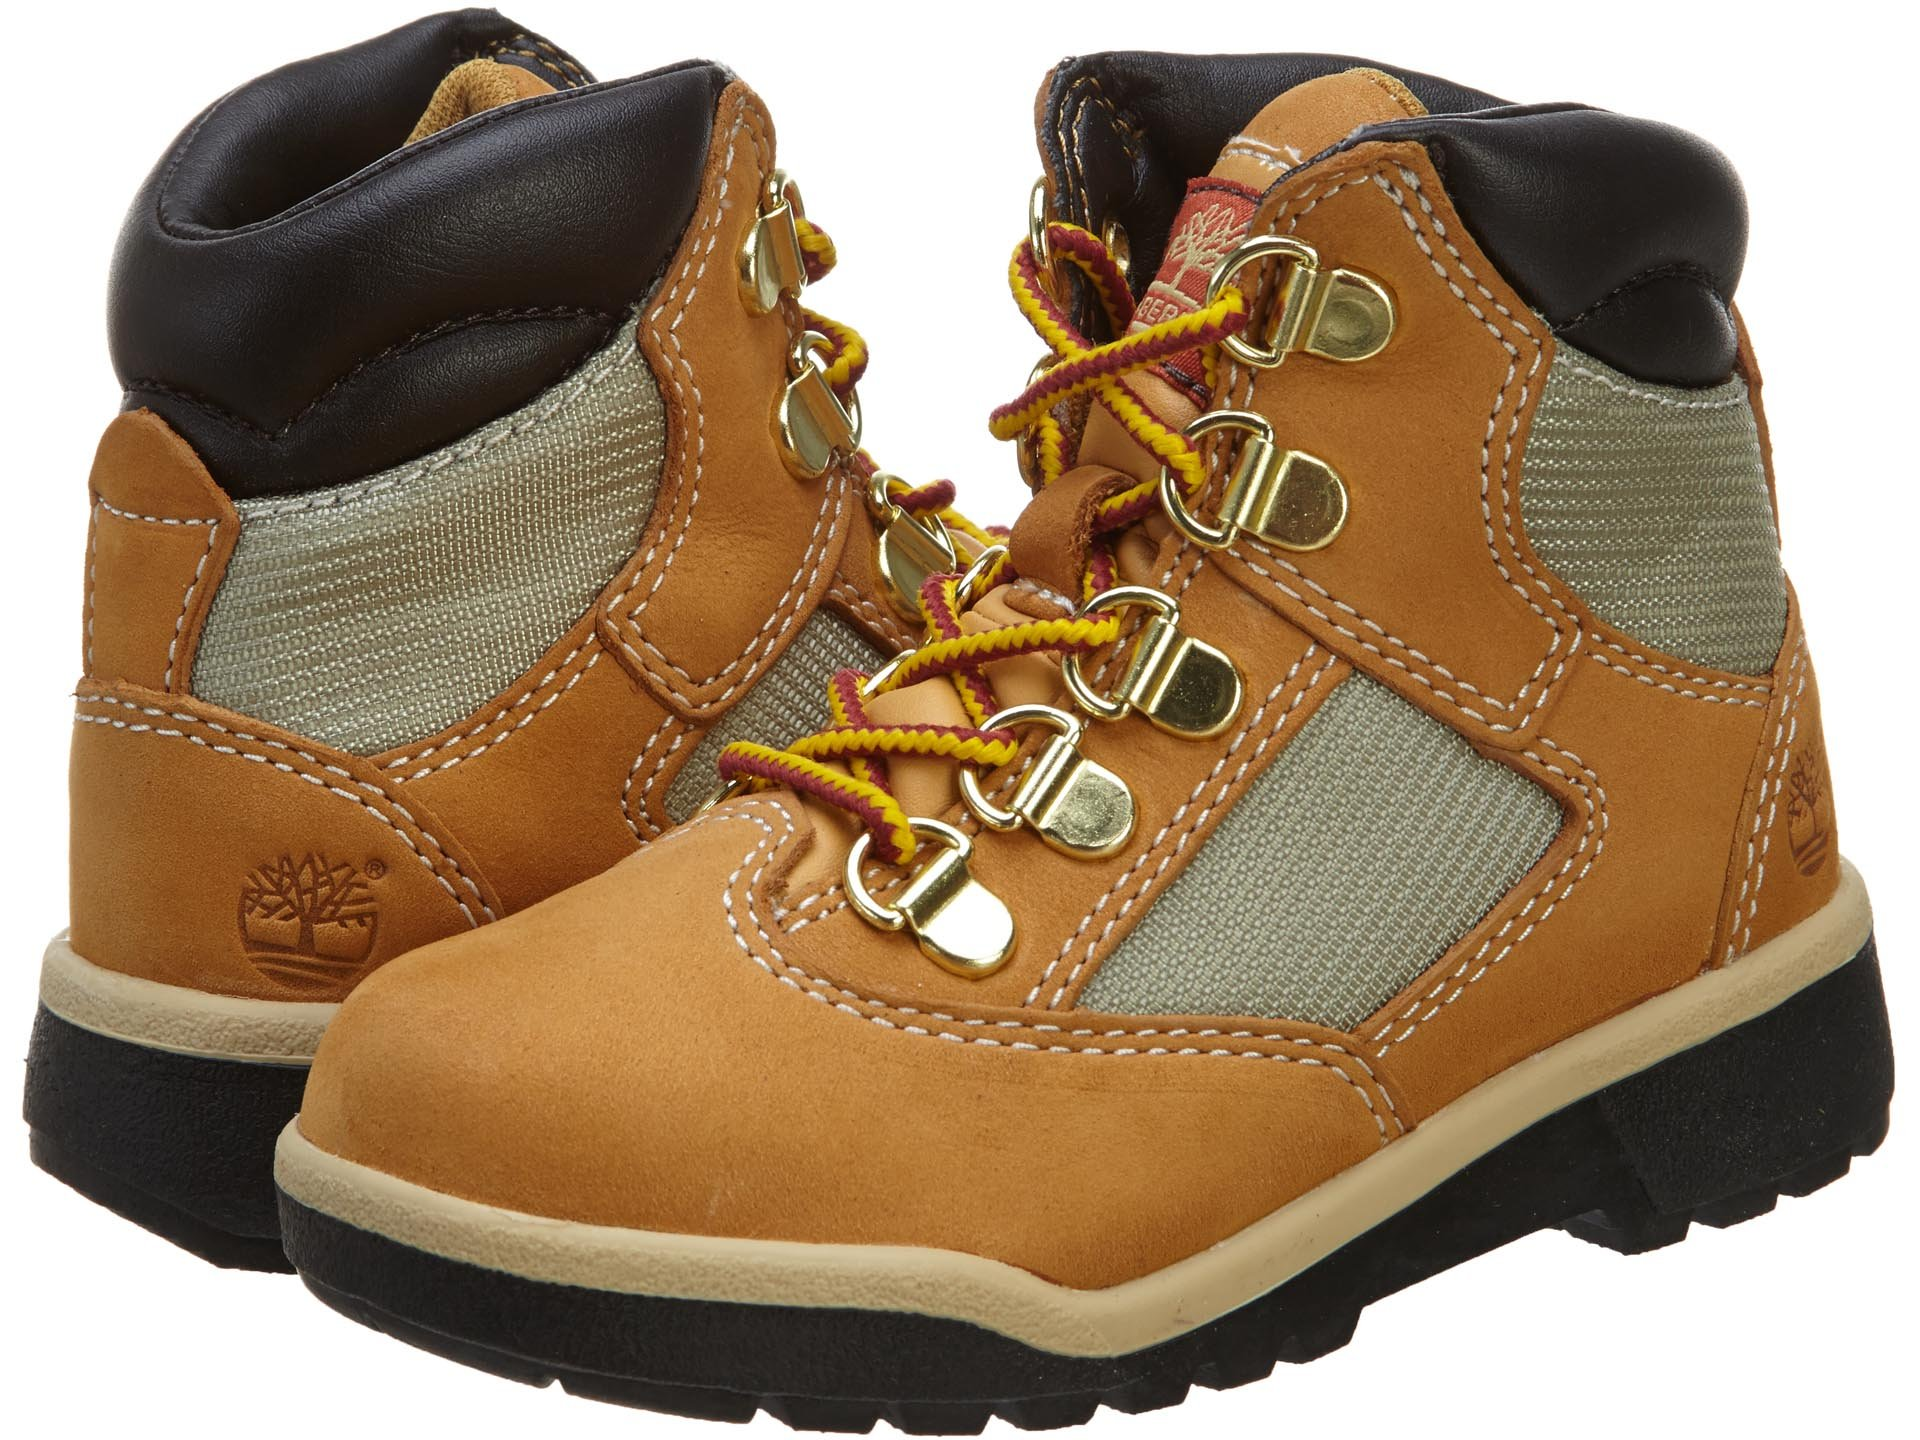 Timberland 6-Inch Leather and Fabric Field Boot (Toddler/Little Kid/Big Kid),Wheat Nubuck,11.5 M US Little Kid